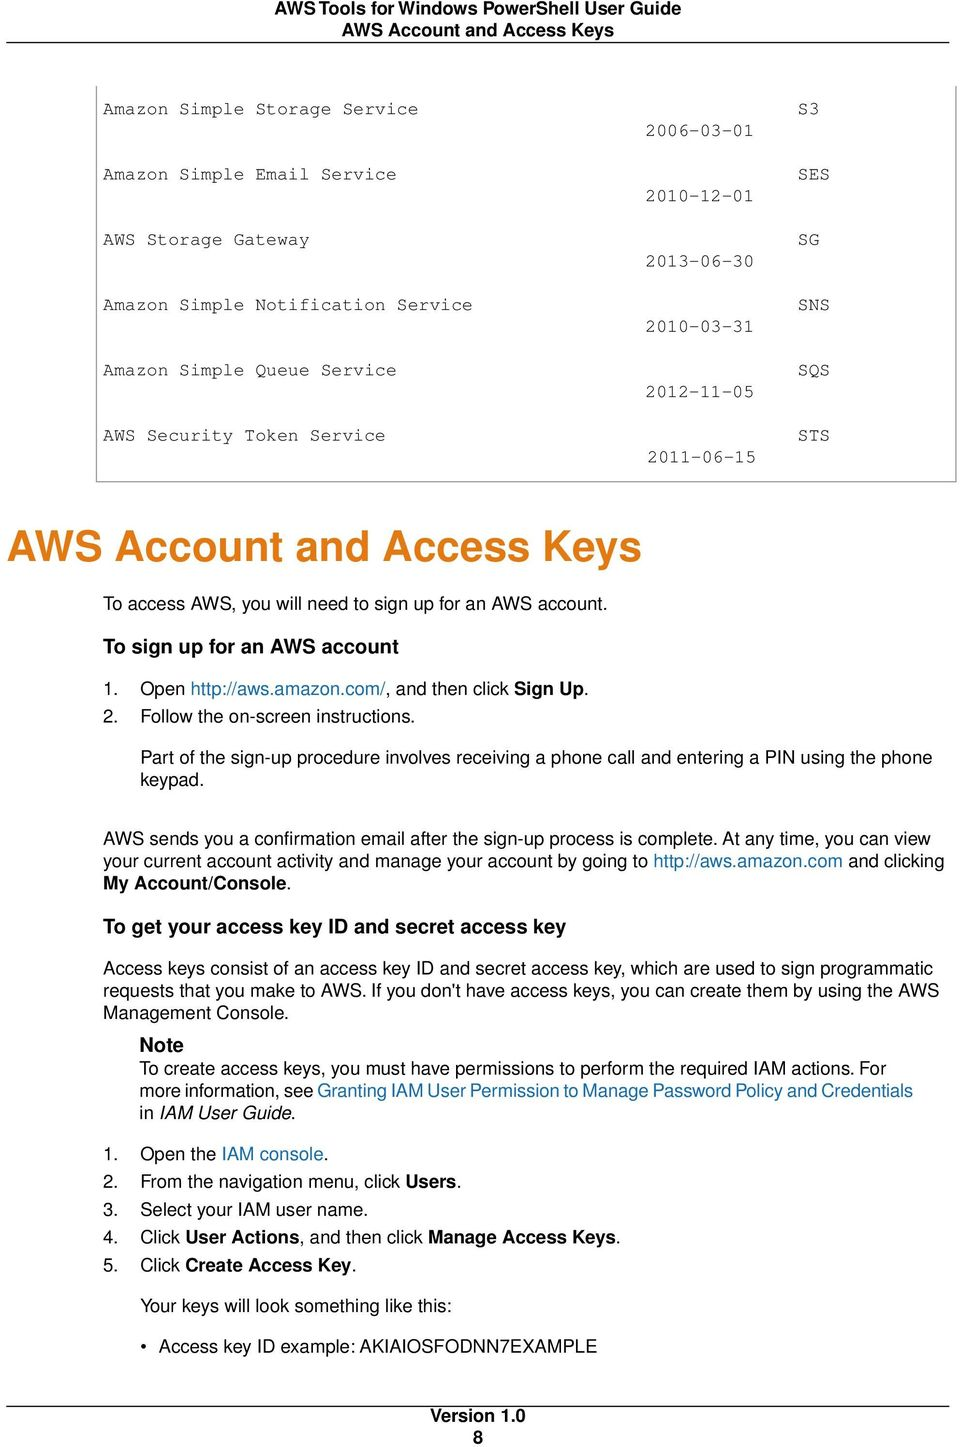 To sign up for an AWS account 1. Open http://aws.amazon.com/, and then click Sign Up. 2. Follow the on-screen instructions.